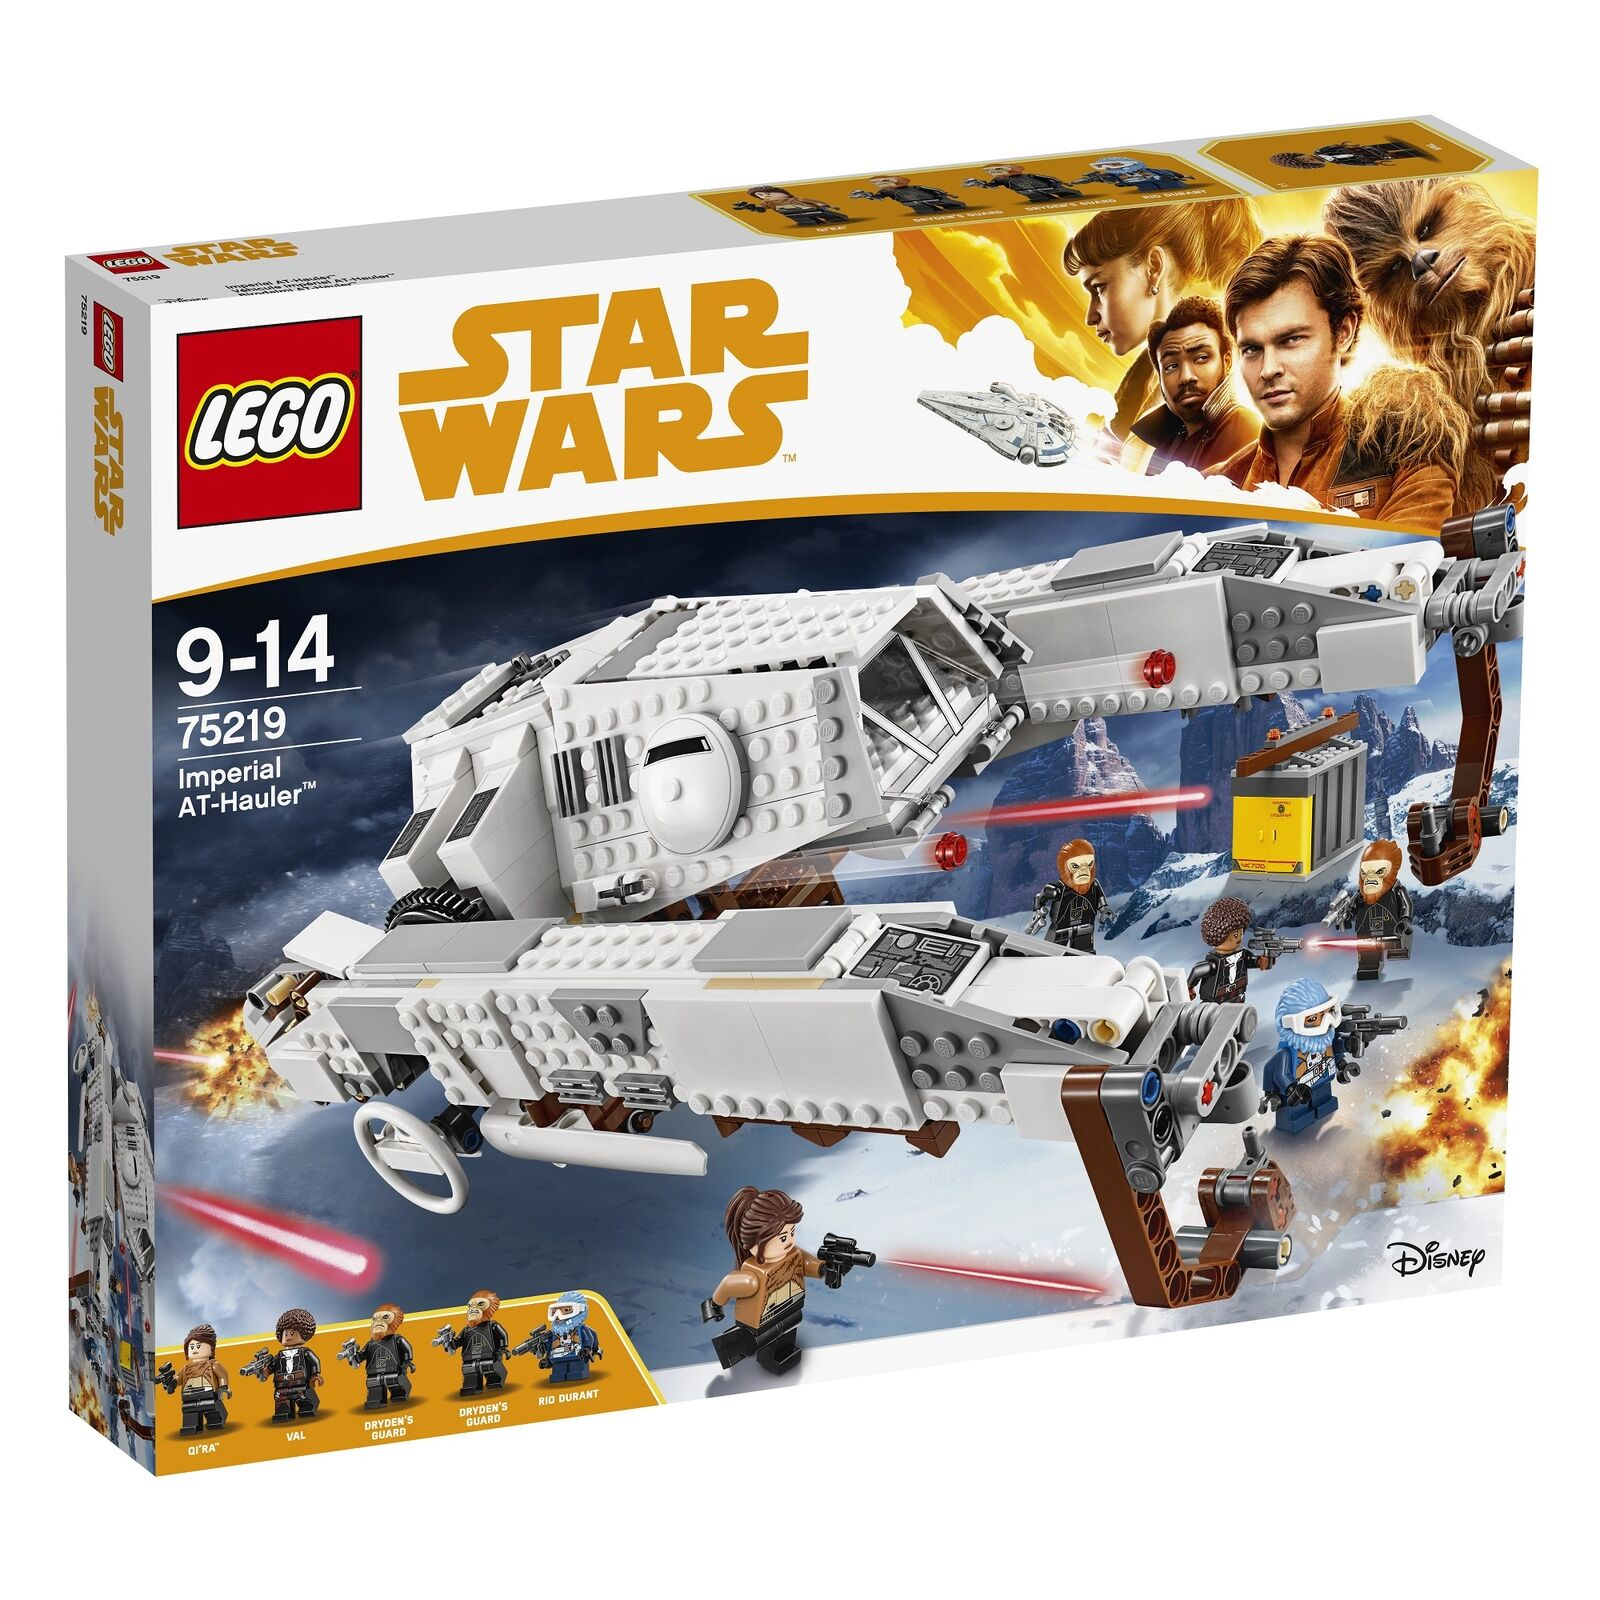 NEW LEGO Star Wars IMPERIAL AT-HAULER (75219) - For 9 to 14 years